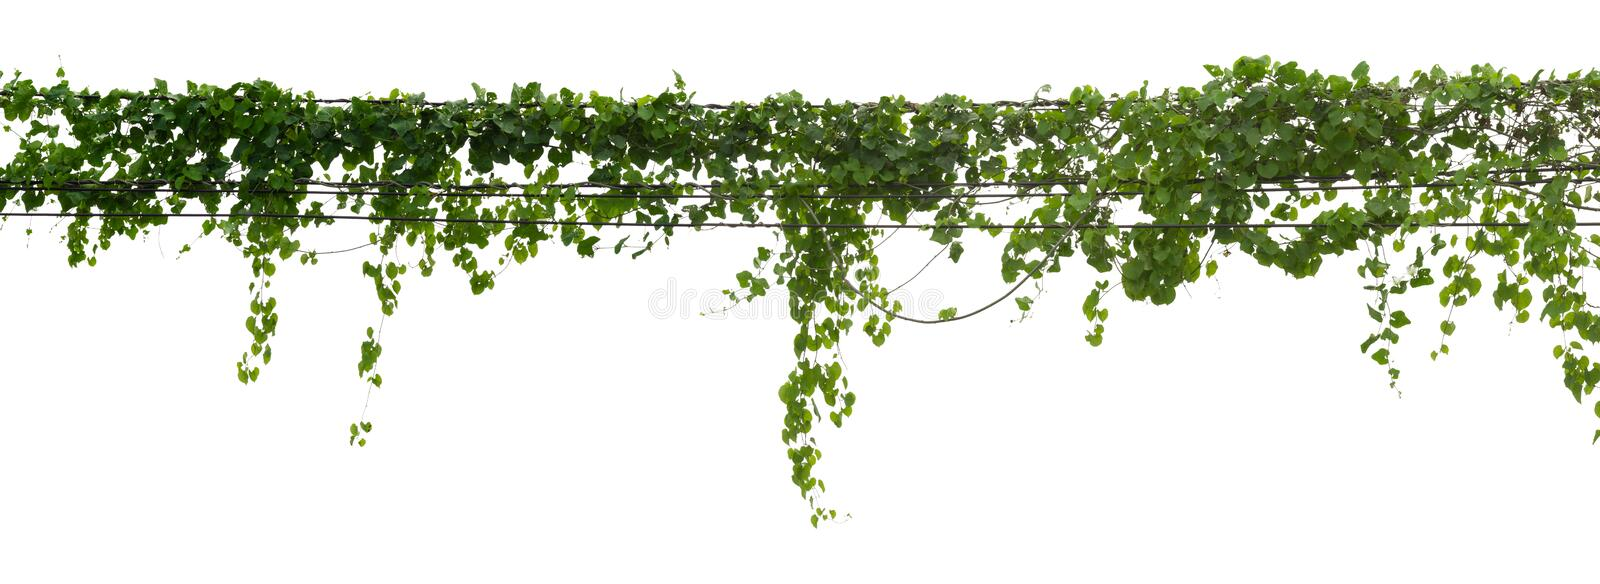 Vine plant climbing isolated on white background with clipping path included stock image